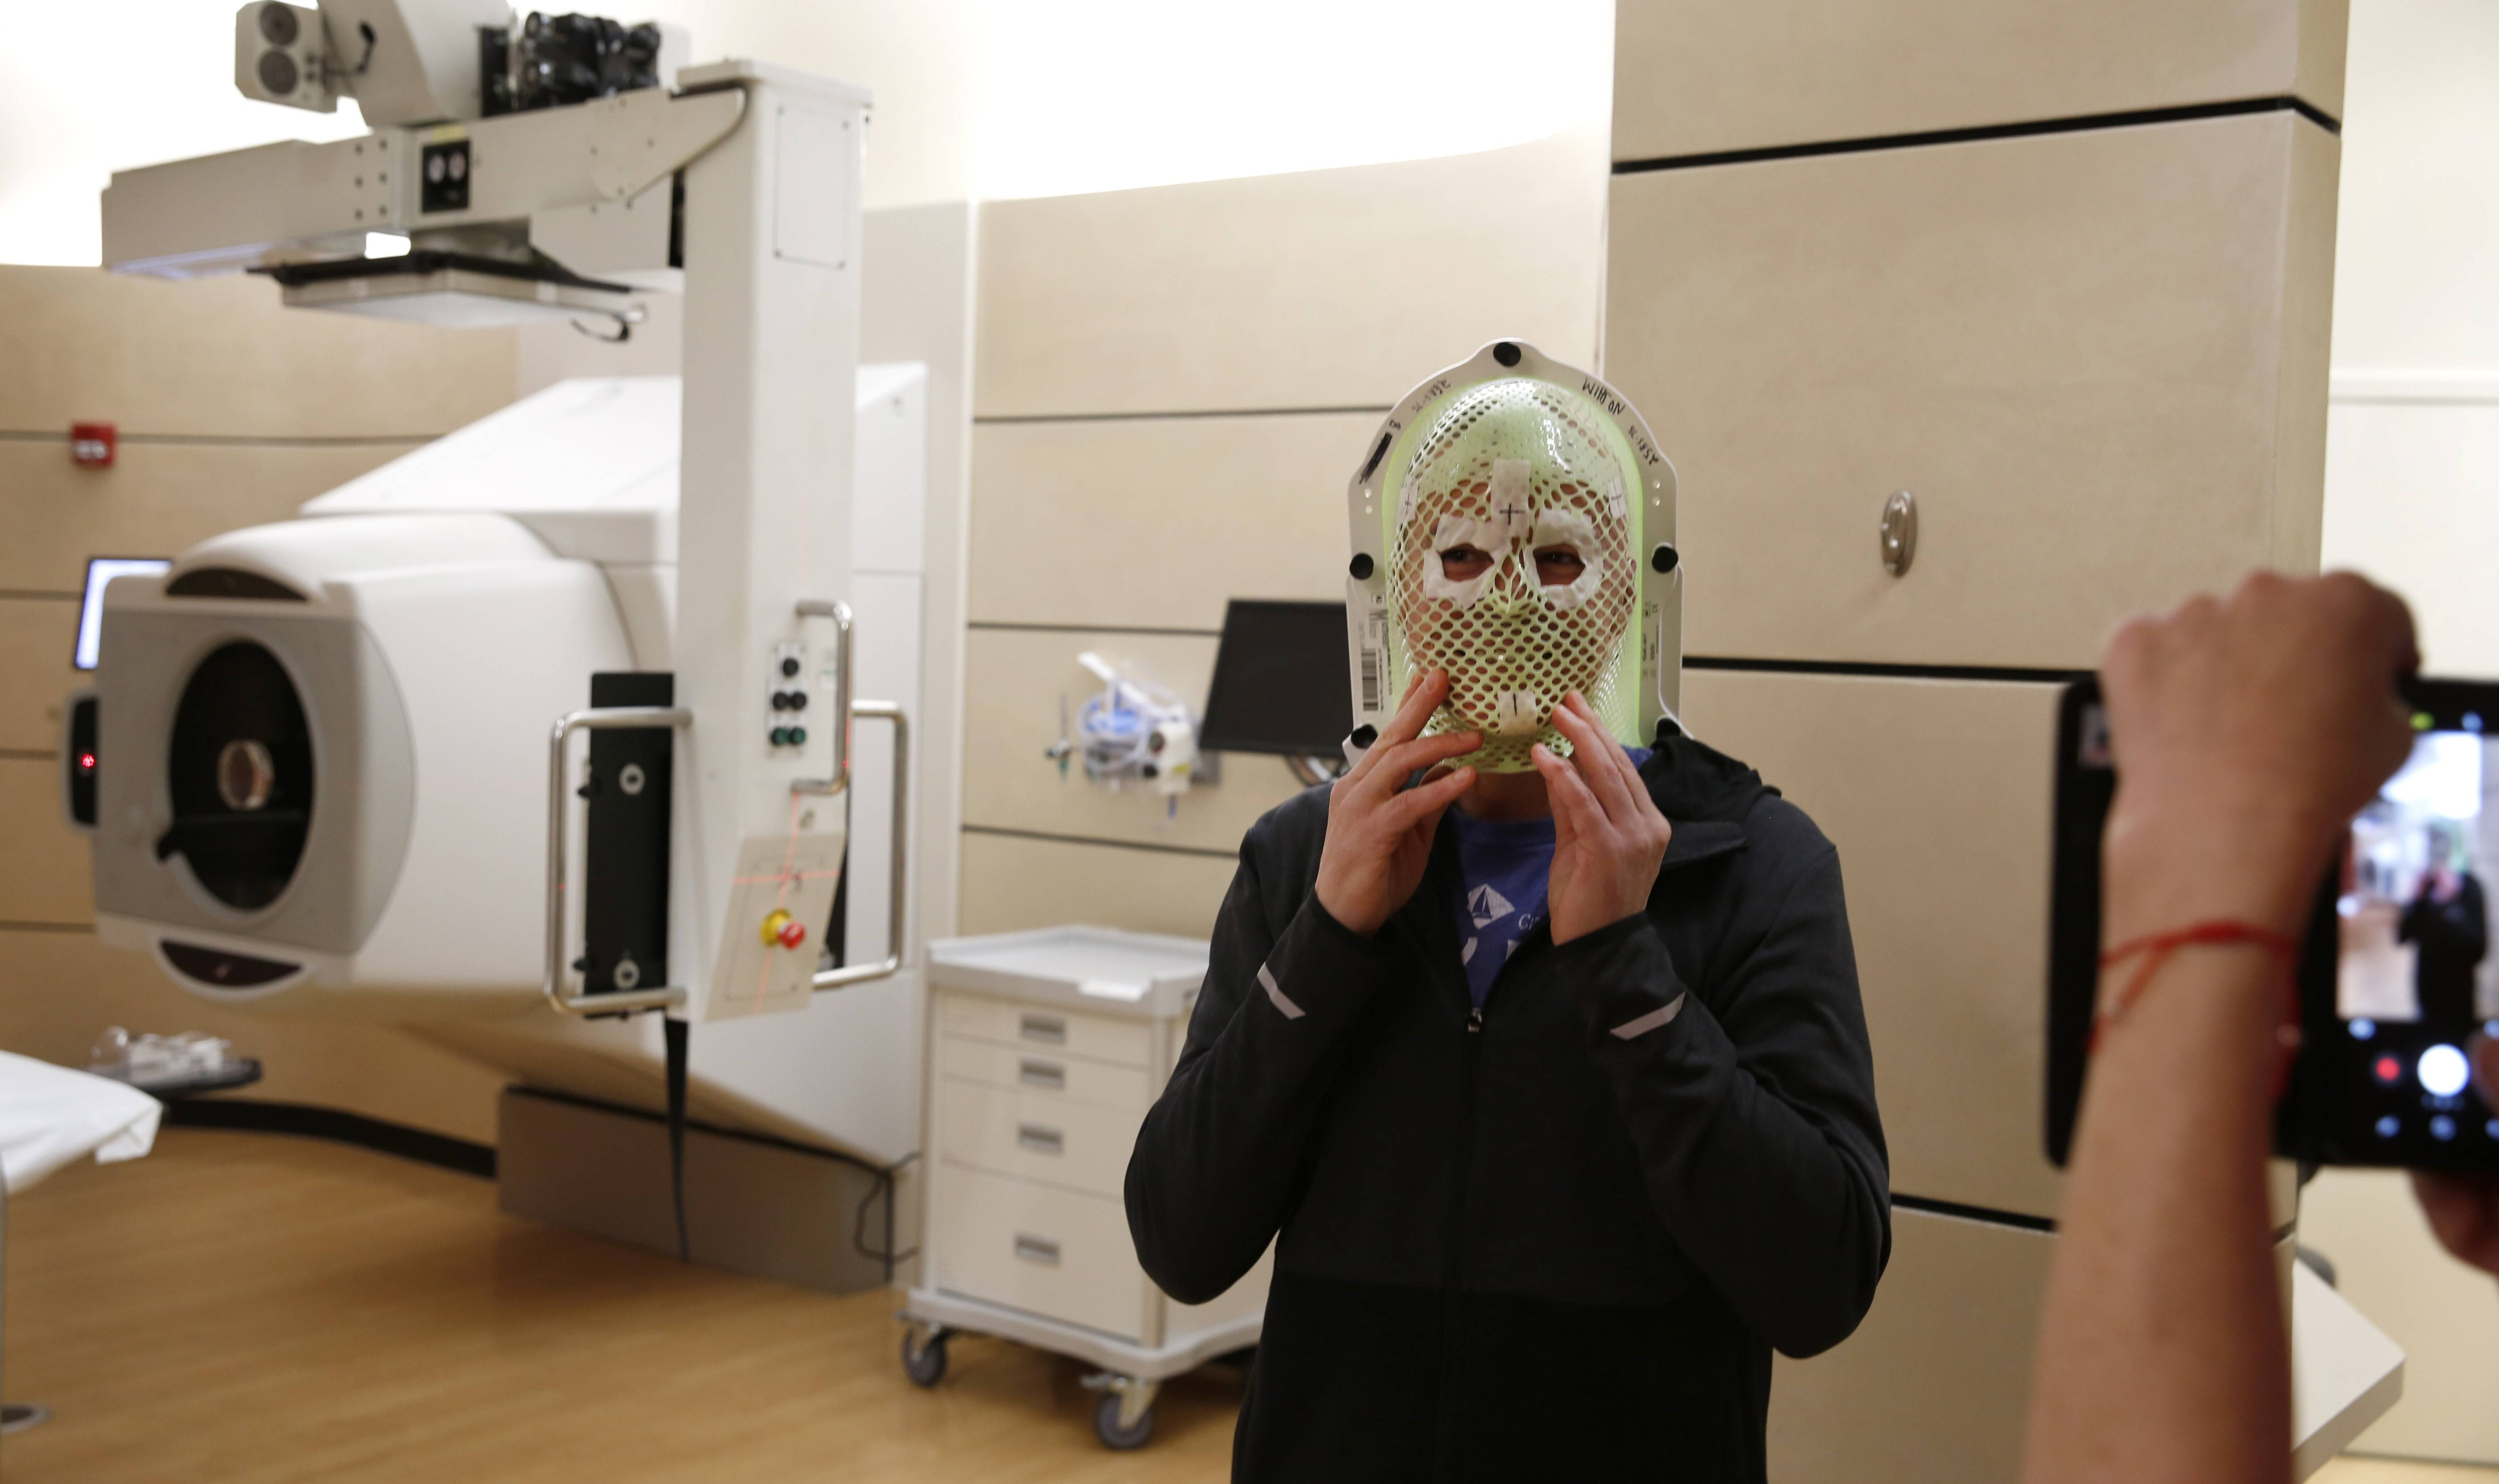 Dale Newman displays his face shield to take a photograph for his wife Amber in the treatment room at the Northwestern Medicine Proton Center in Warrenville, where he undergoes 8-week daily radiation treatments for a brain tumor.